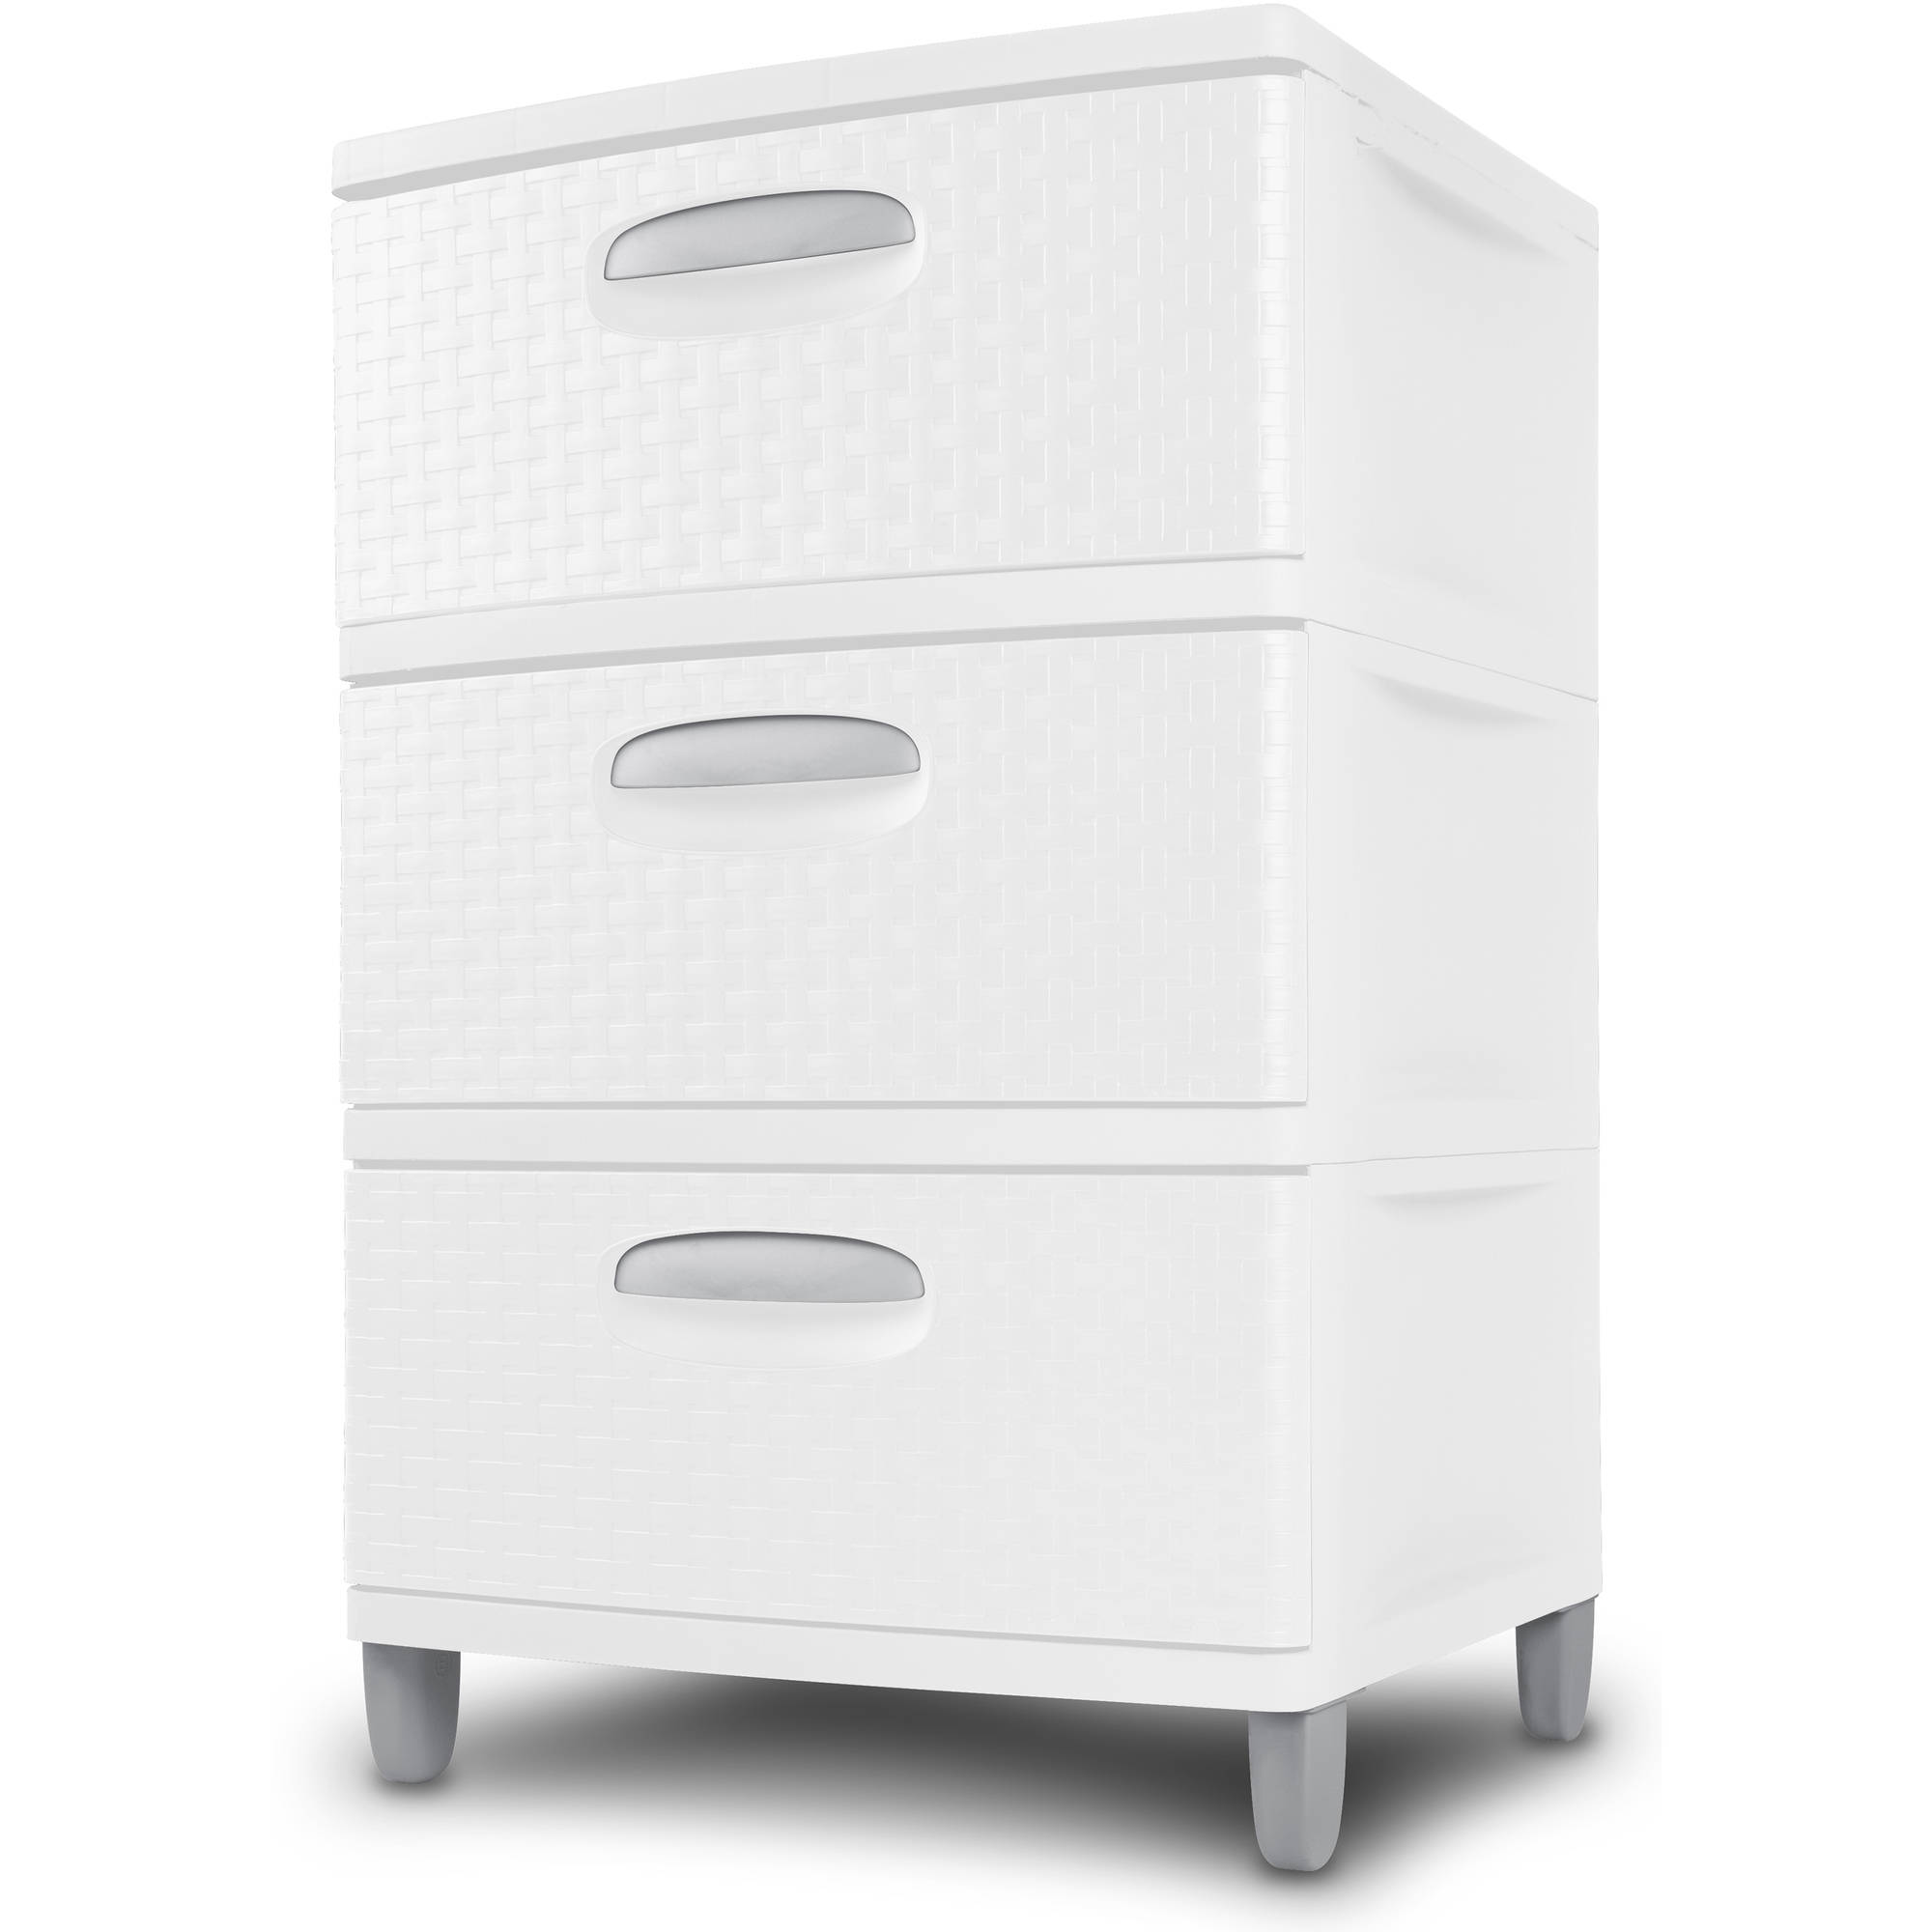 3 Drawer Wide Storage Cabinet White Plastic Weave Set Of 2